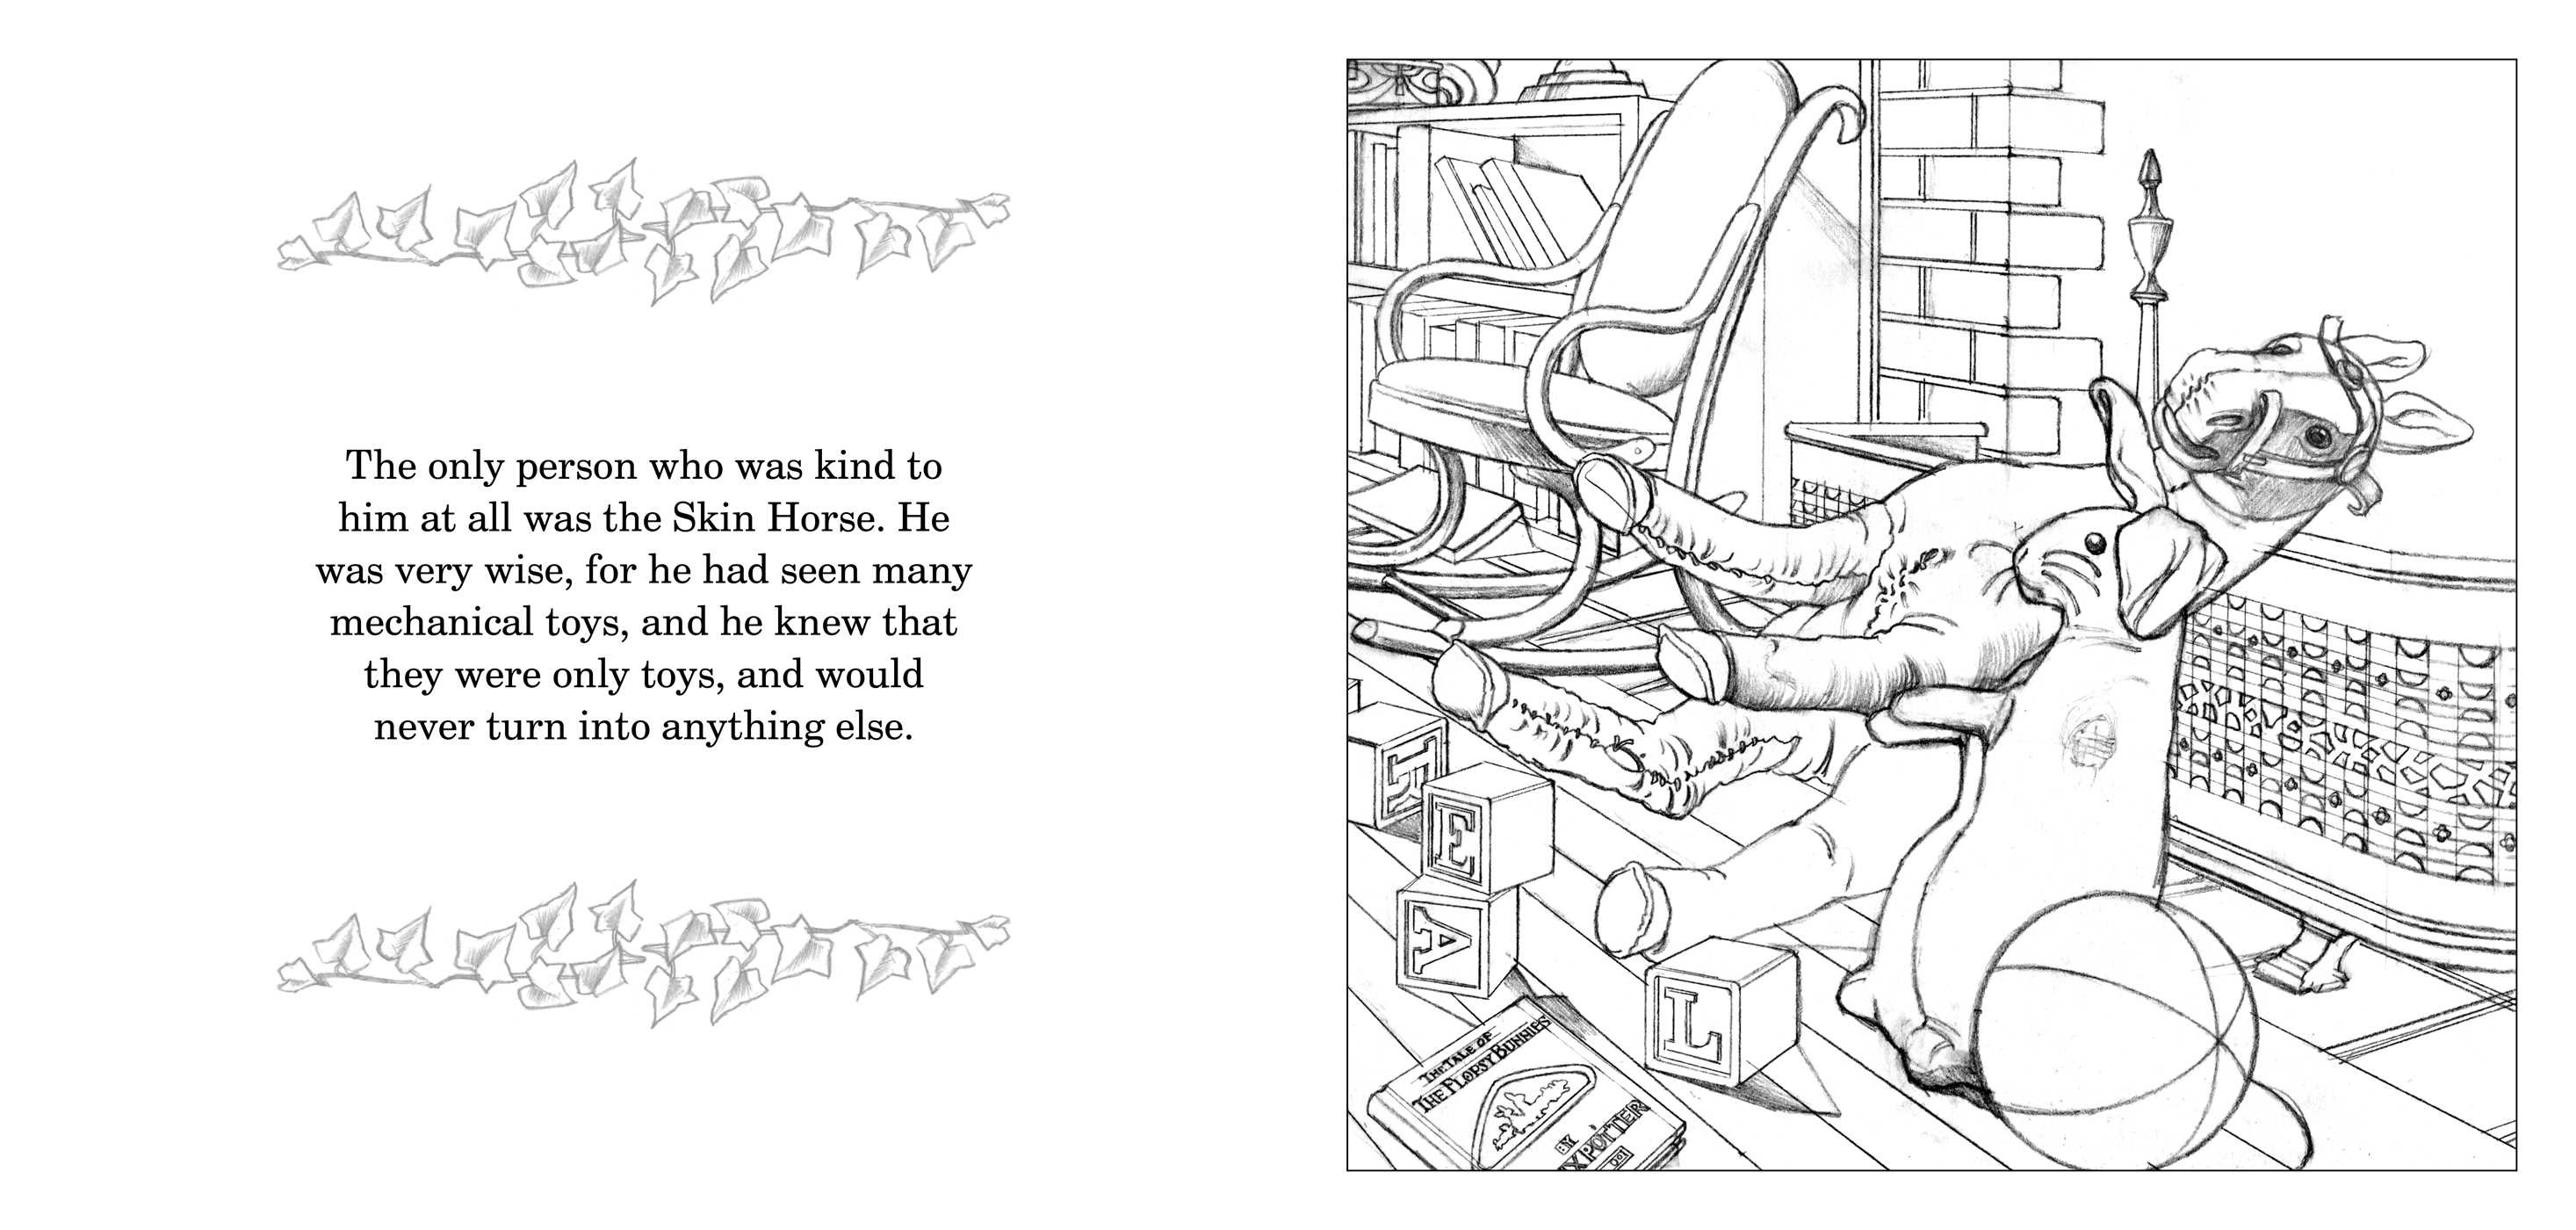 Velveteen rabbit and coloring pages ~ The Velveteen Rabbit Coloring Book | Book by Charles ...